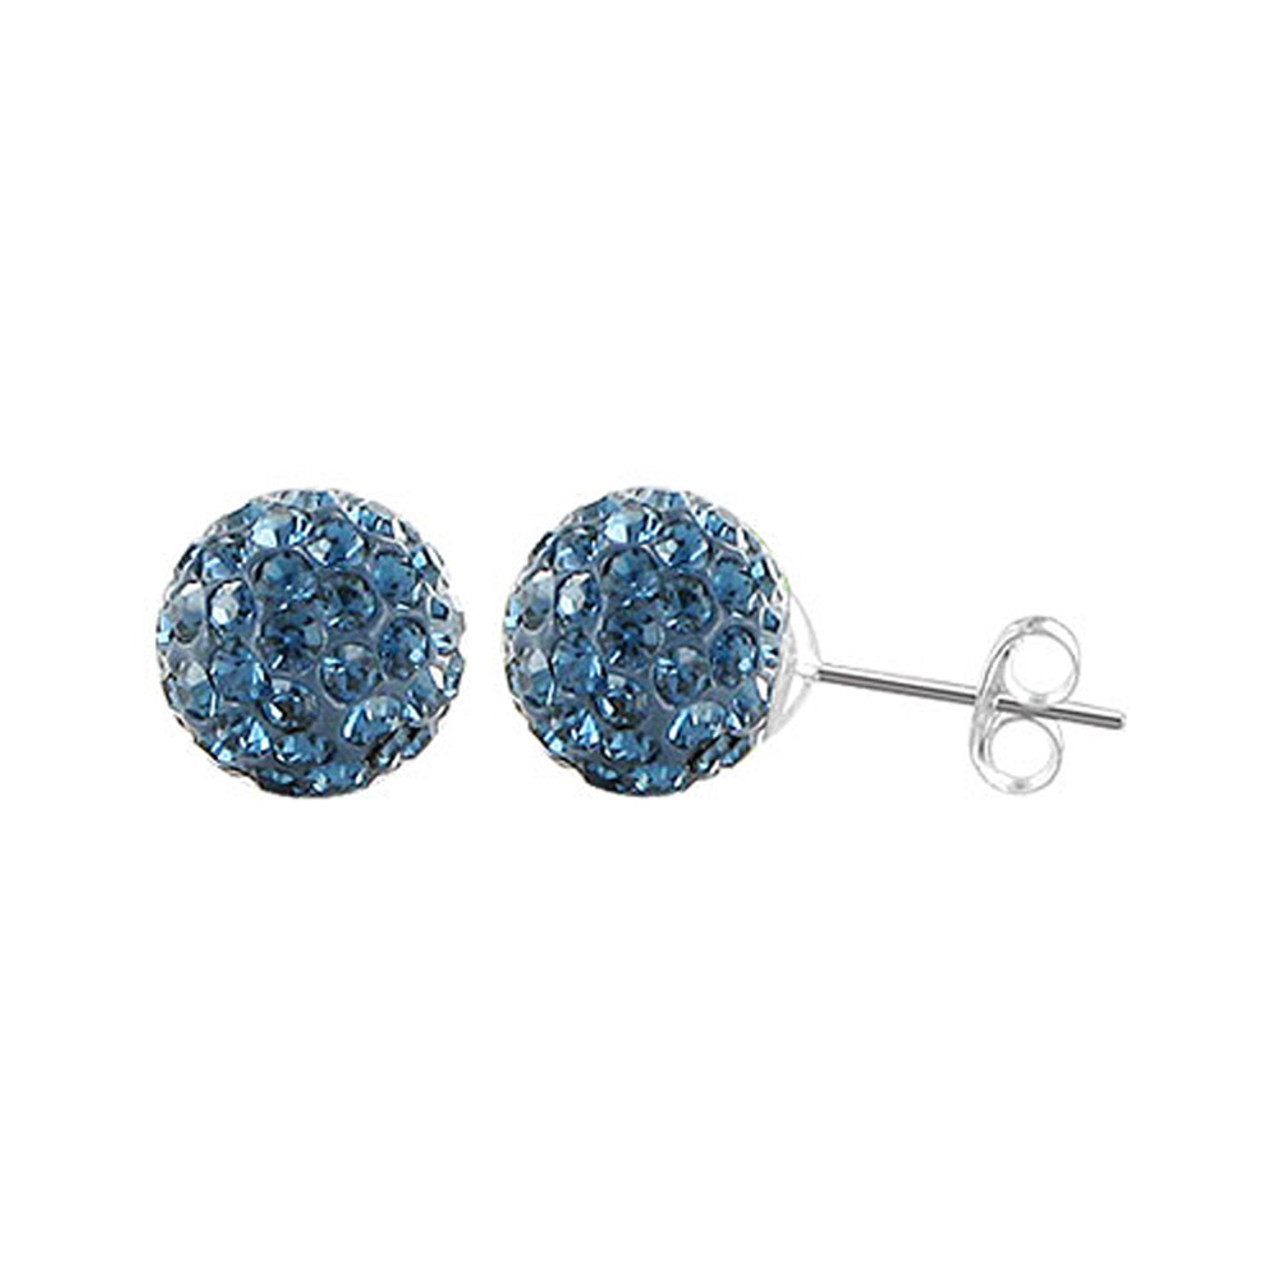 6mm Round Montana Blue Crystal Ball Stud Earrings